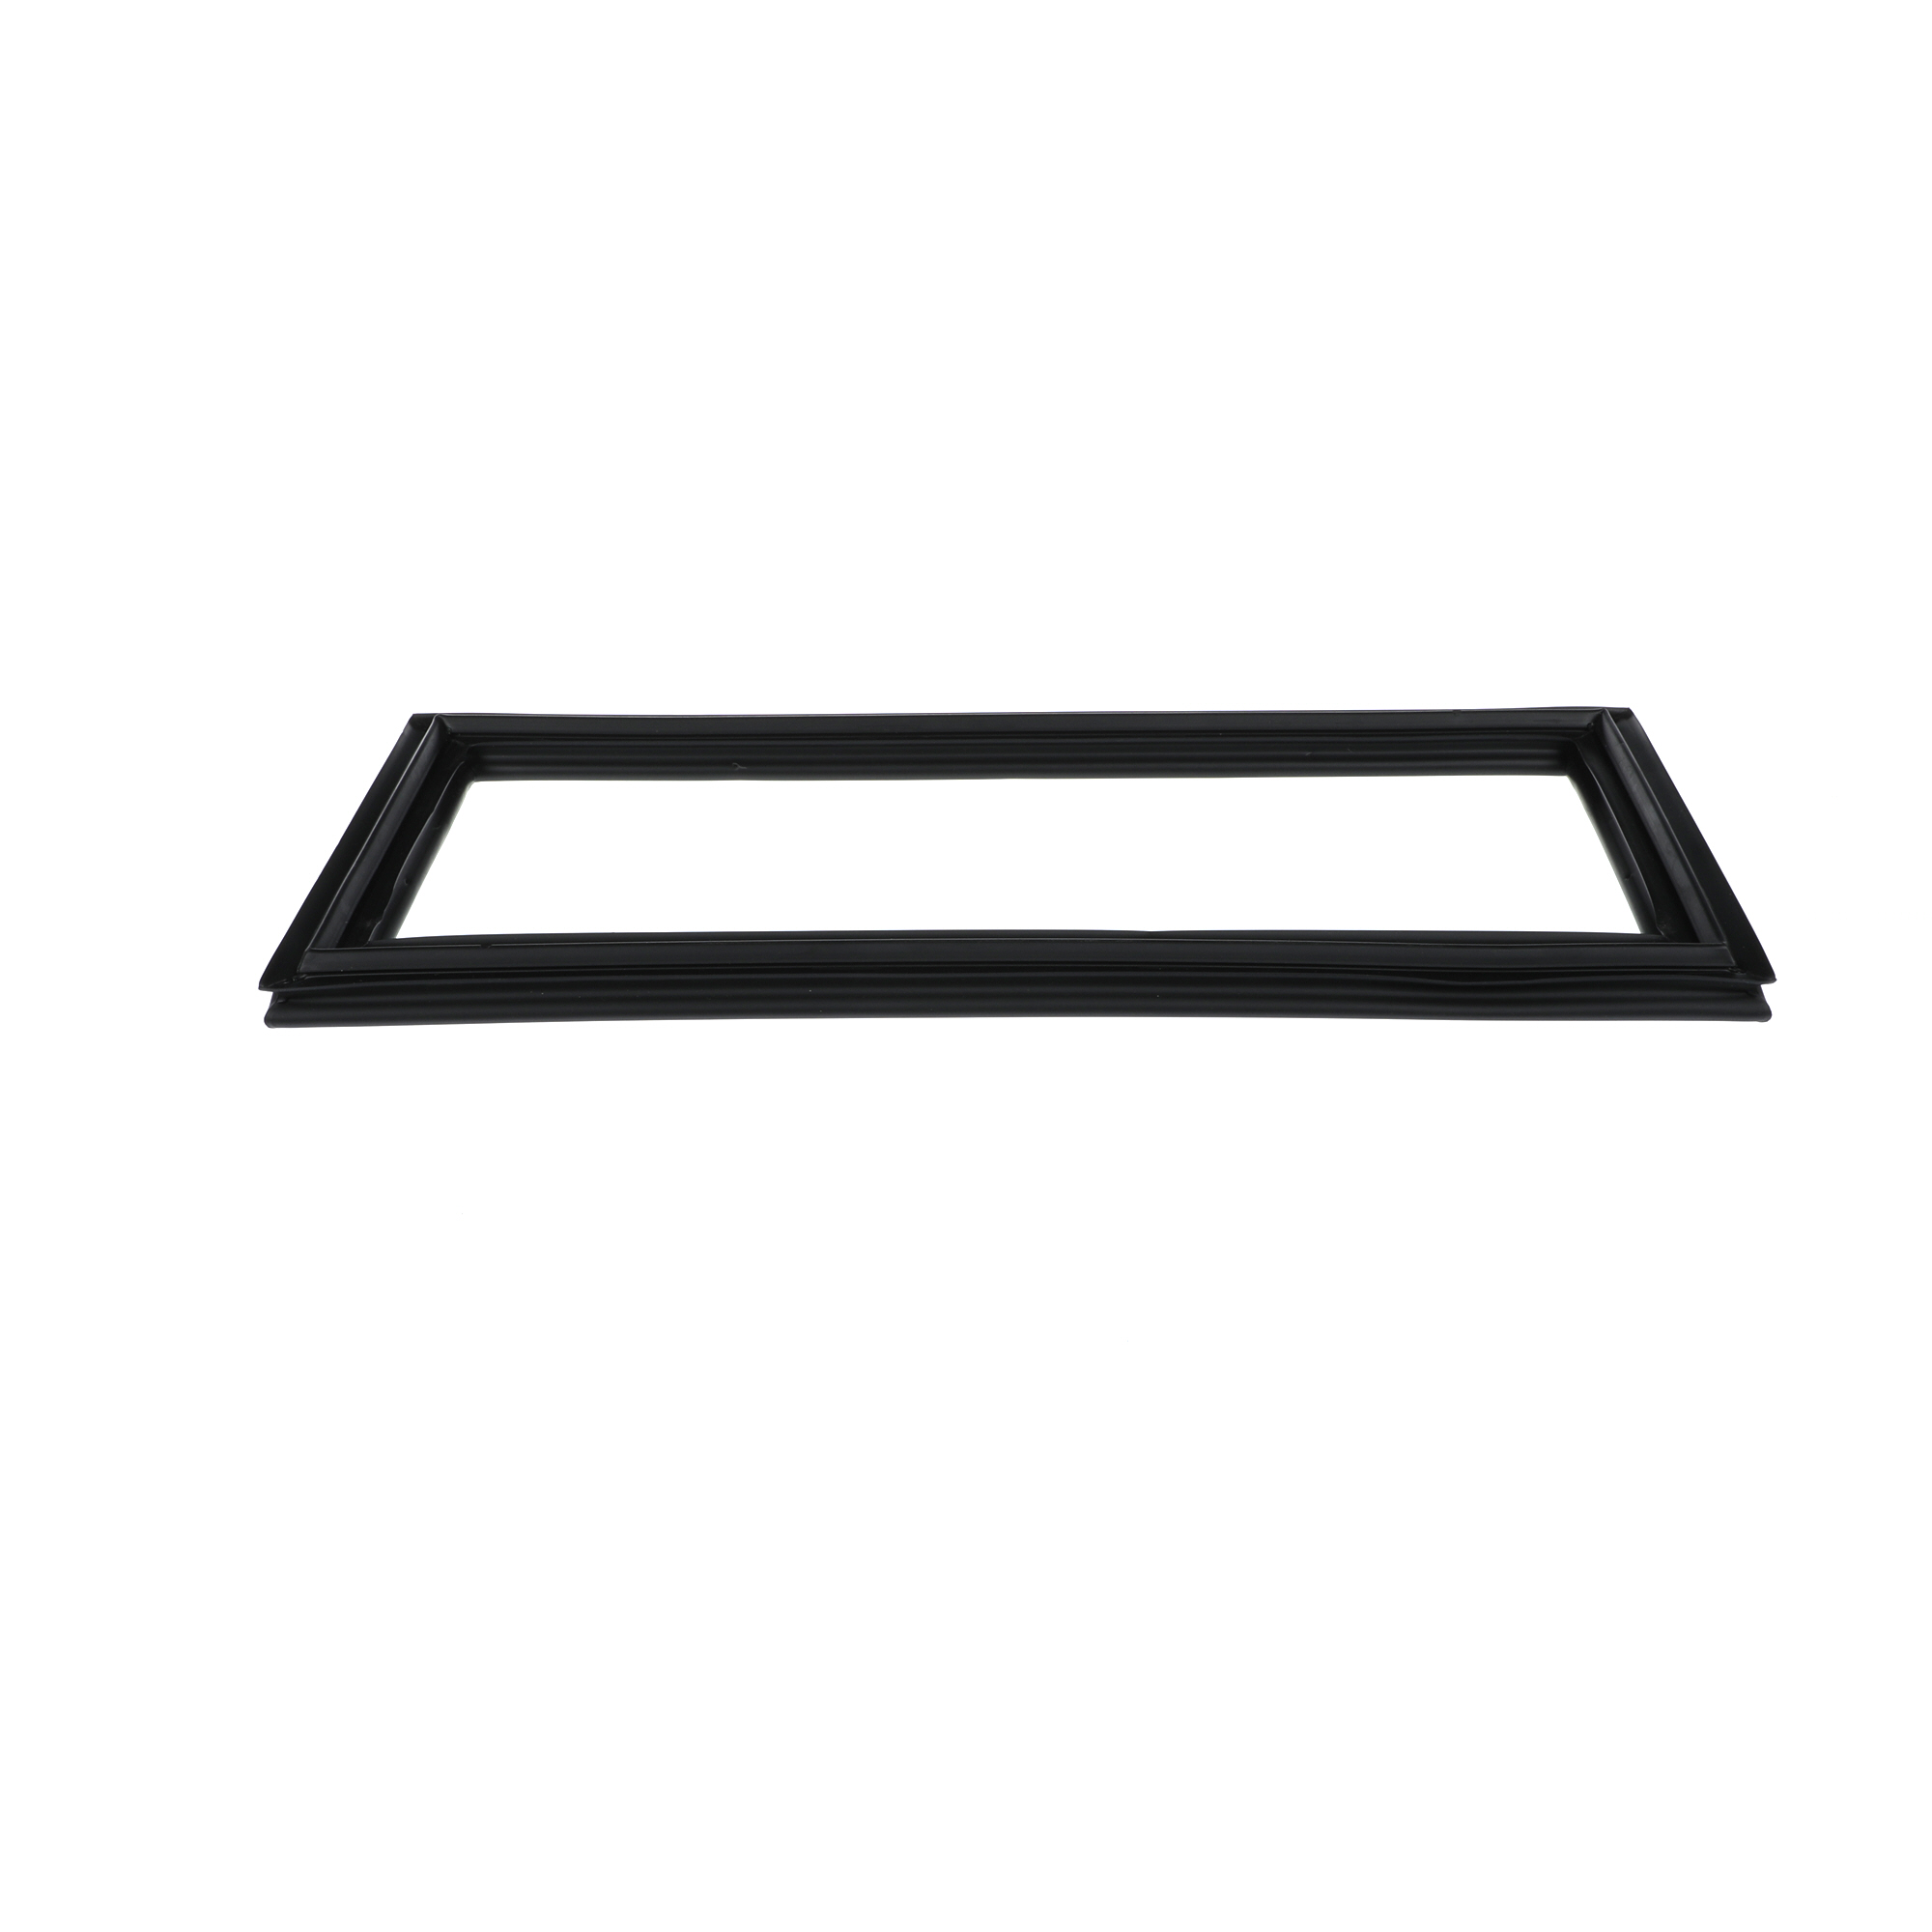 DRAWER GASKET 403.5X180MM MAGNETIC BLACK